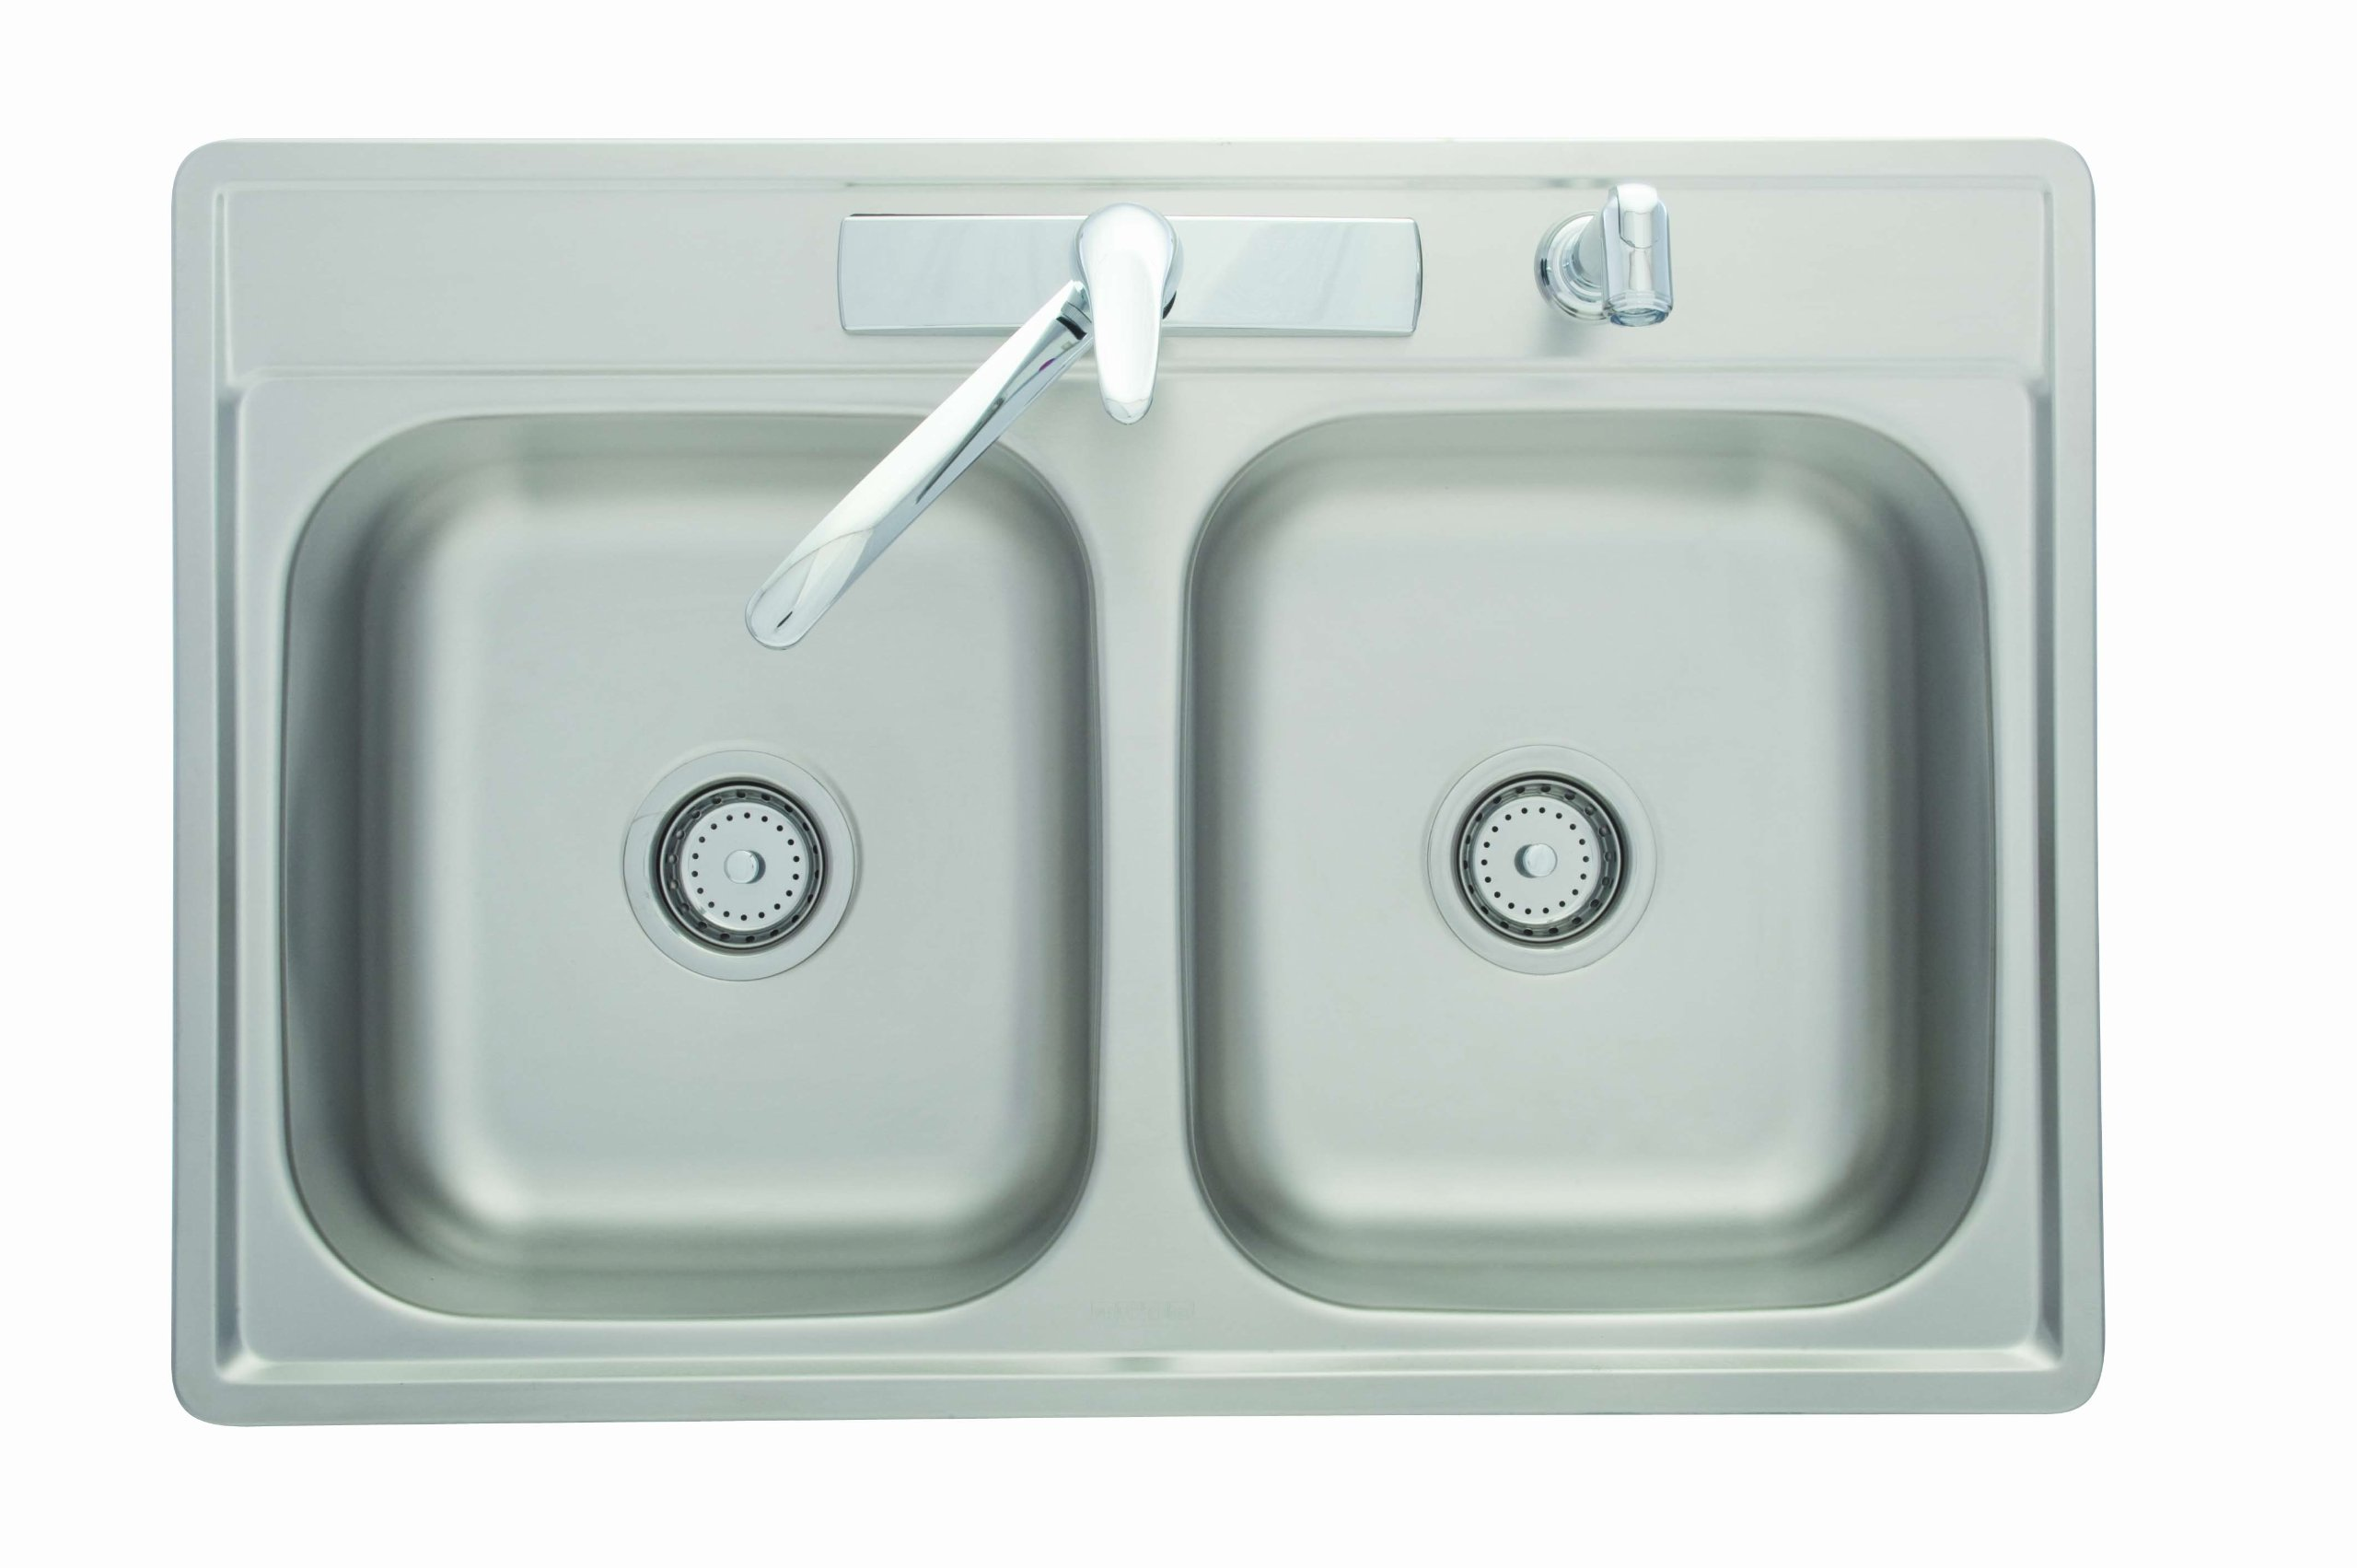 Kindred FDS704NKIT Double Bowl Stainless Steel 33x22in. Topmount Sink